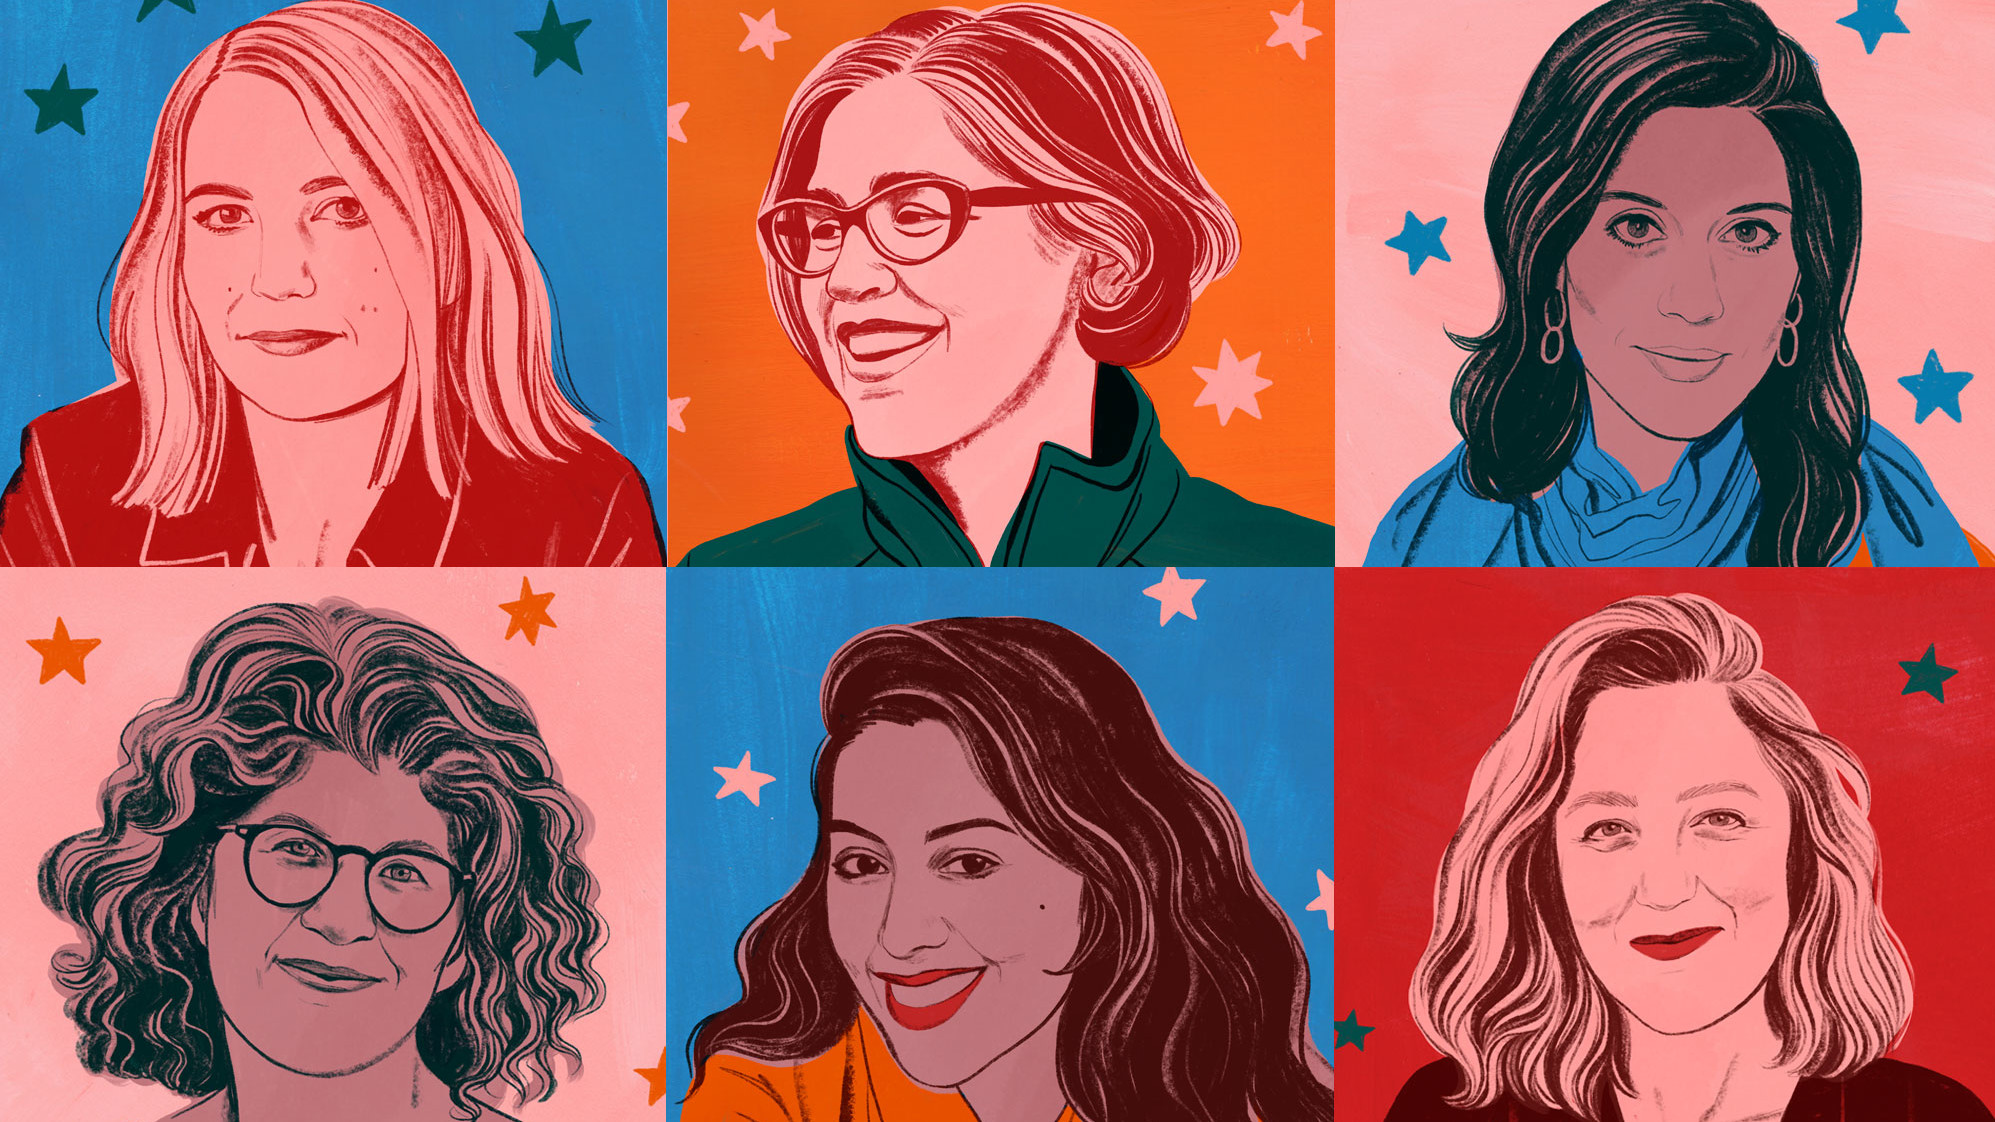 Illustrations by Bijou Karman of filmmakers Amy Talkington, Nicole Kassell, Cherien Dabis, Gina Fattore, Smriti Mundhra, Anna Winger